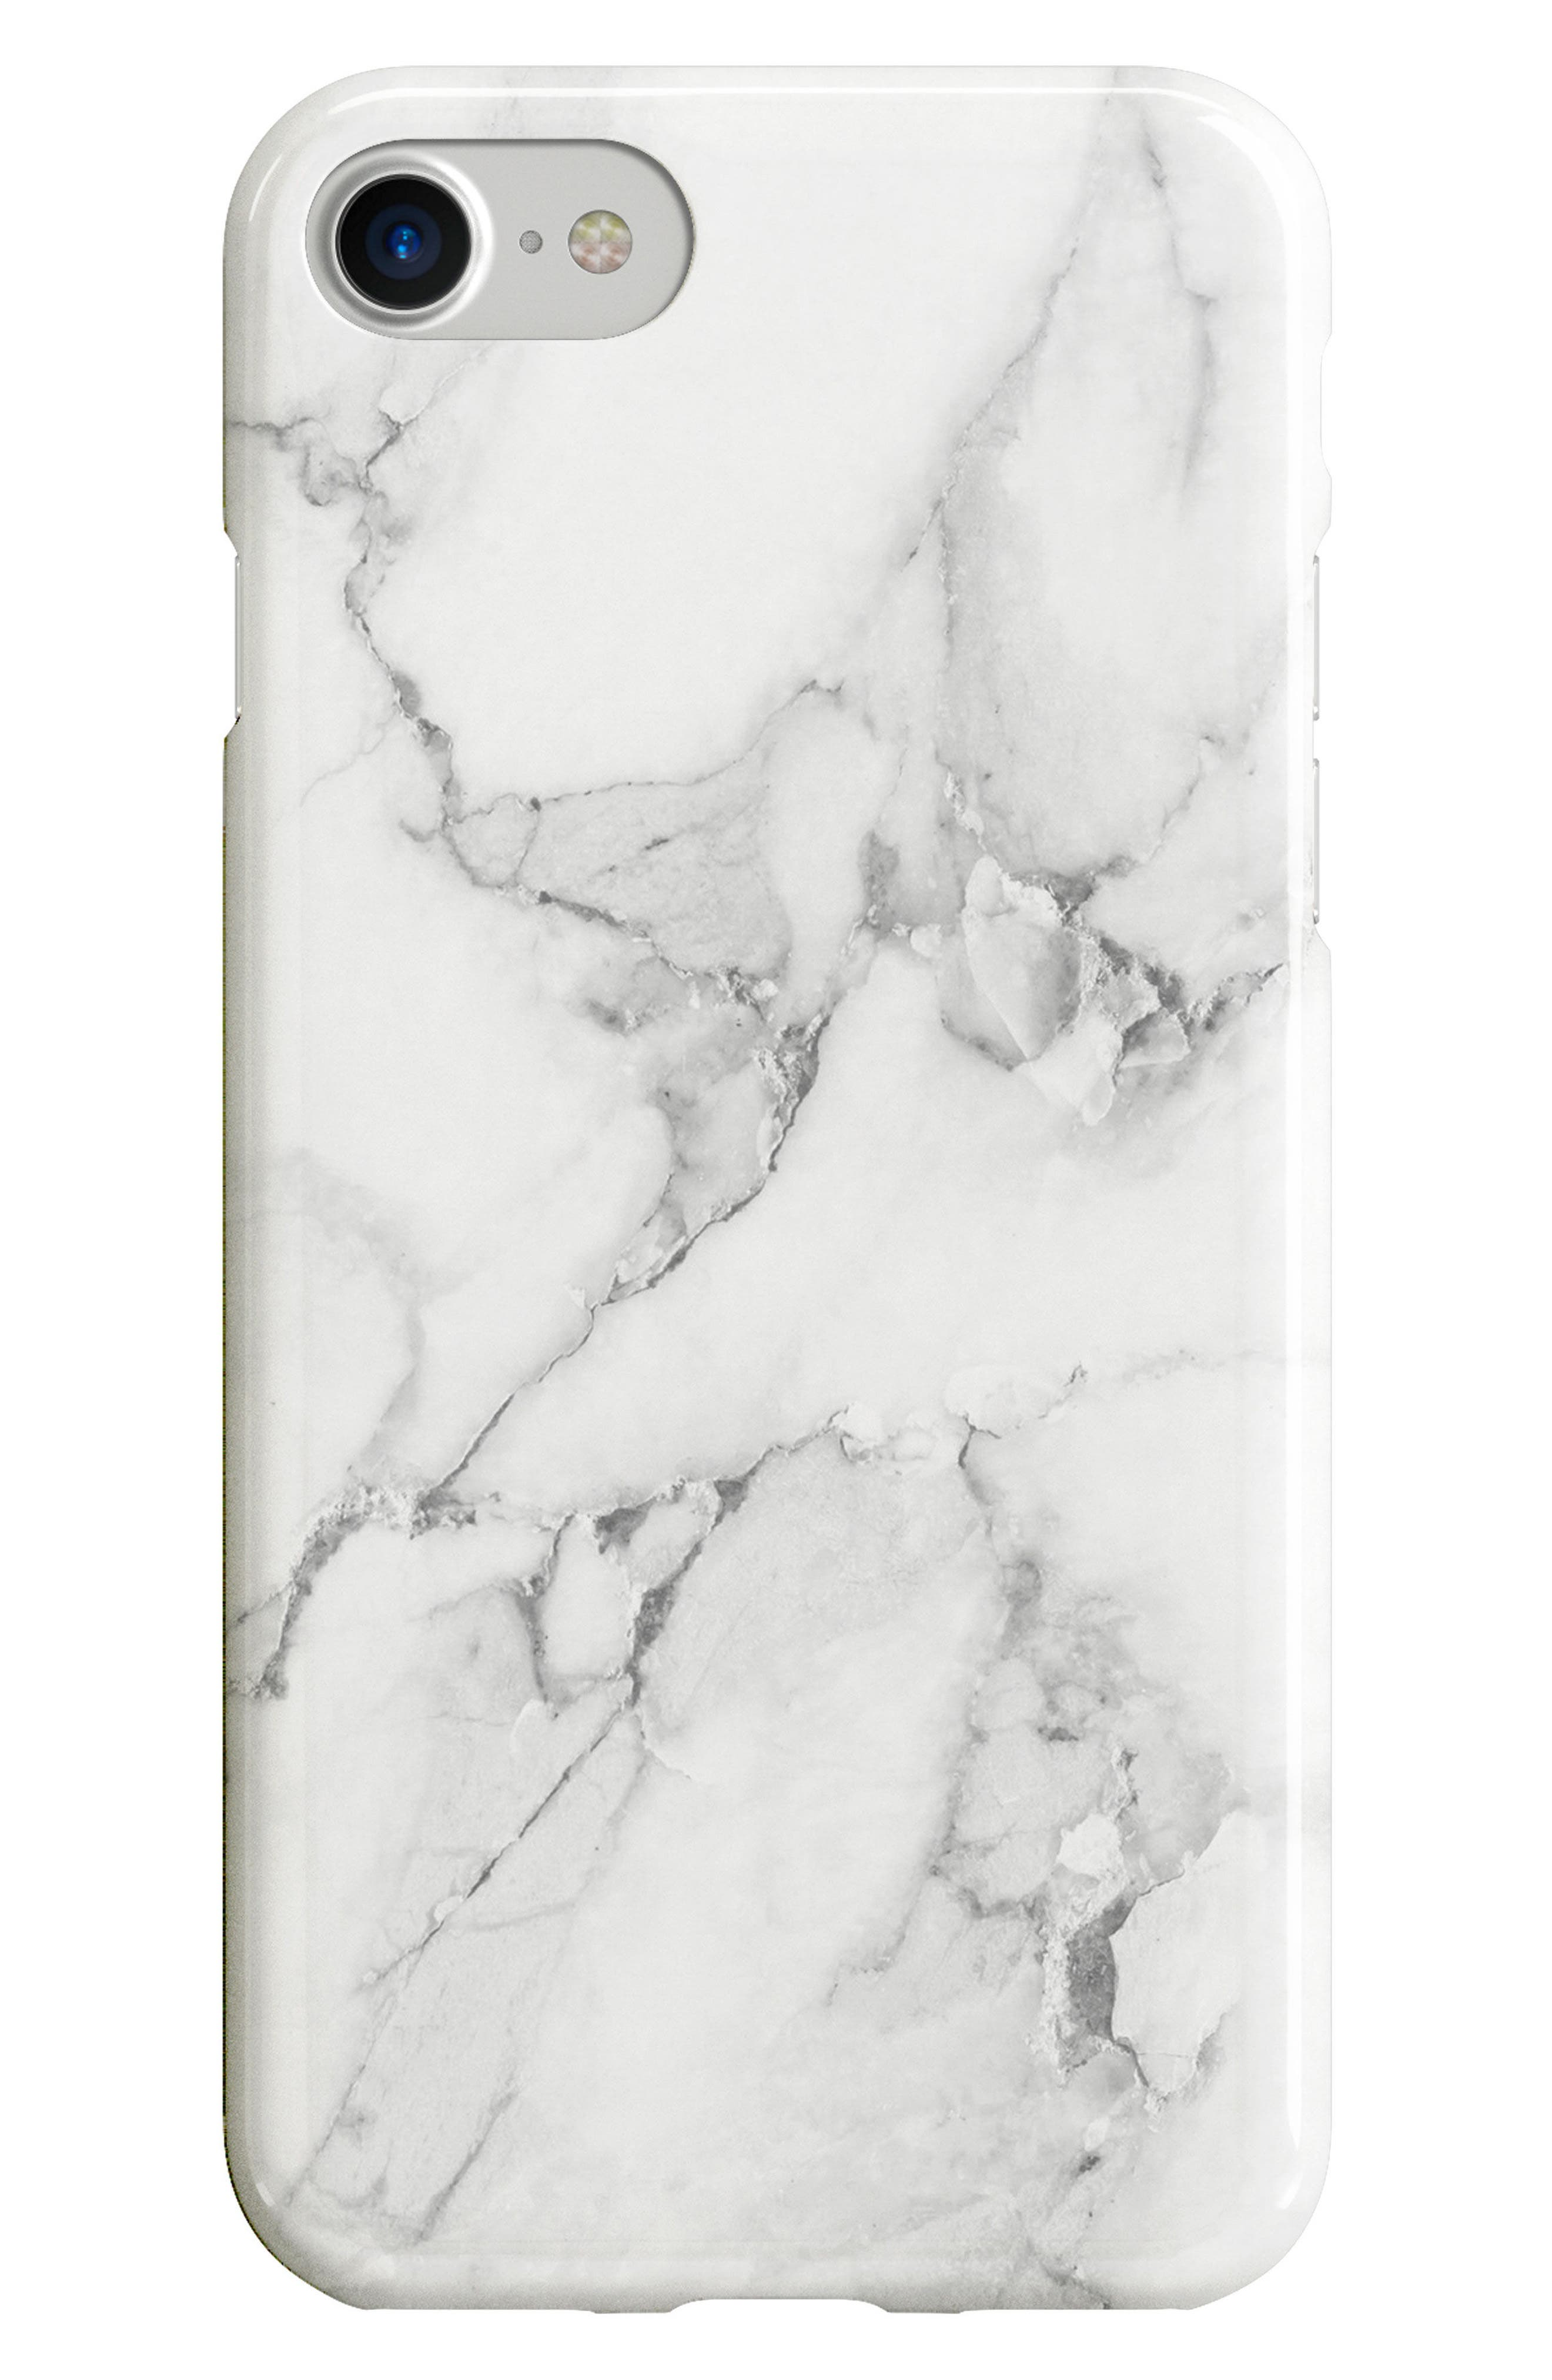 RECOVER, White Marble iPhone 6/6s/7/8 & 6/6s/7/8 Plus Case, Main thumbnail 1, color, WHITE MARBLE